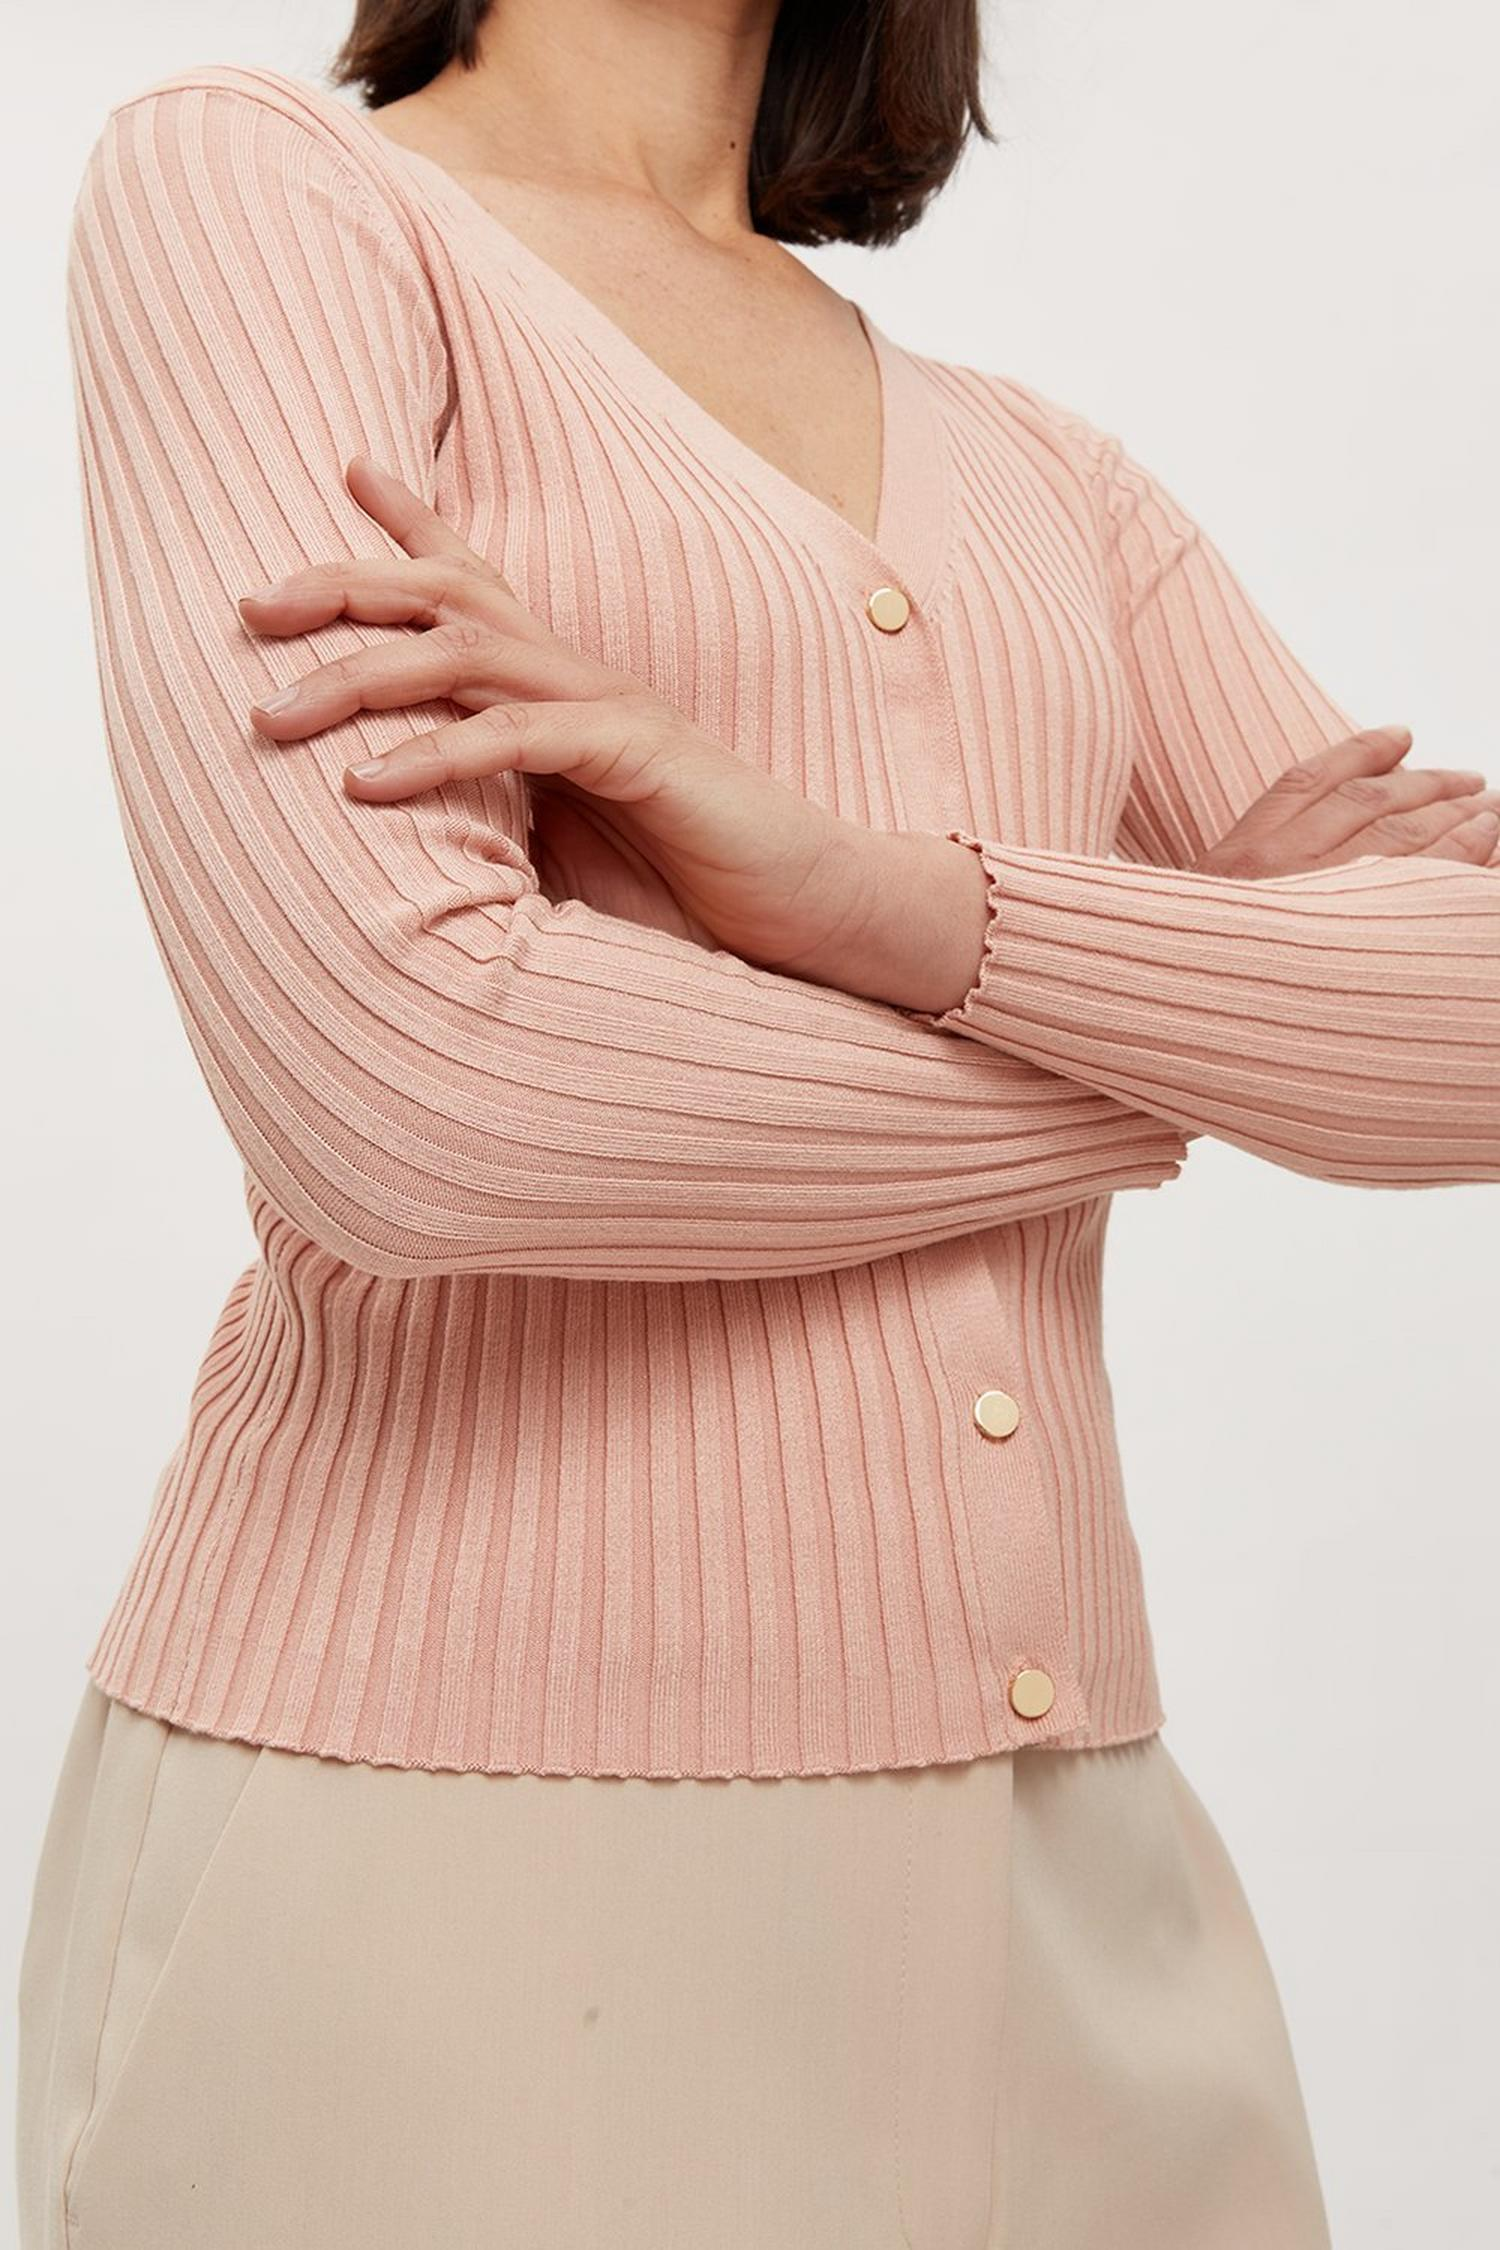 158 l V Neck Button Cardigan image number 4